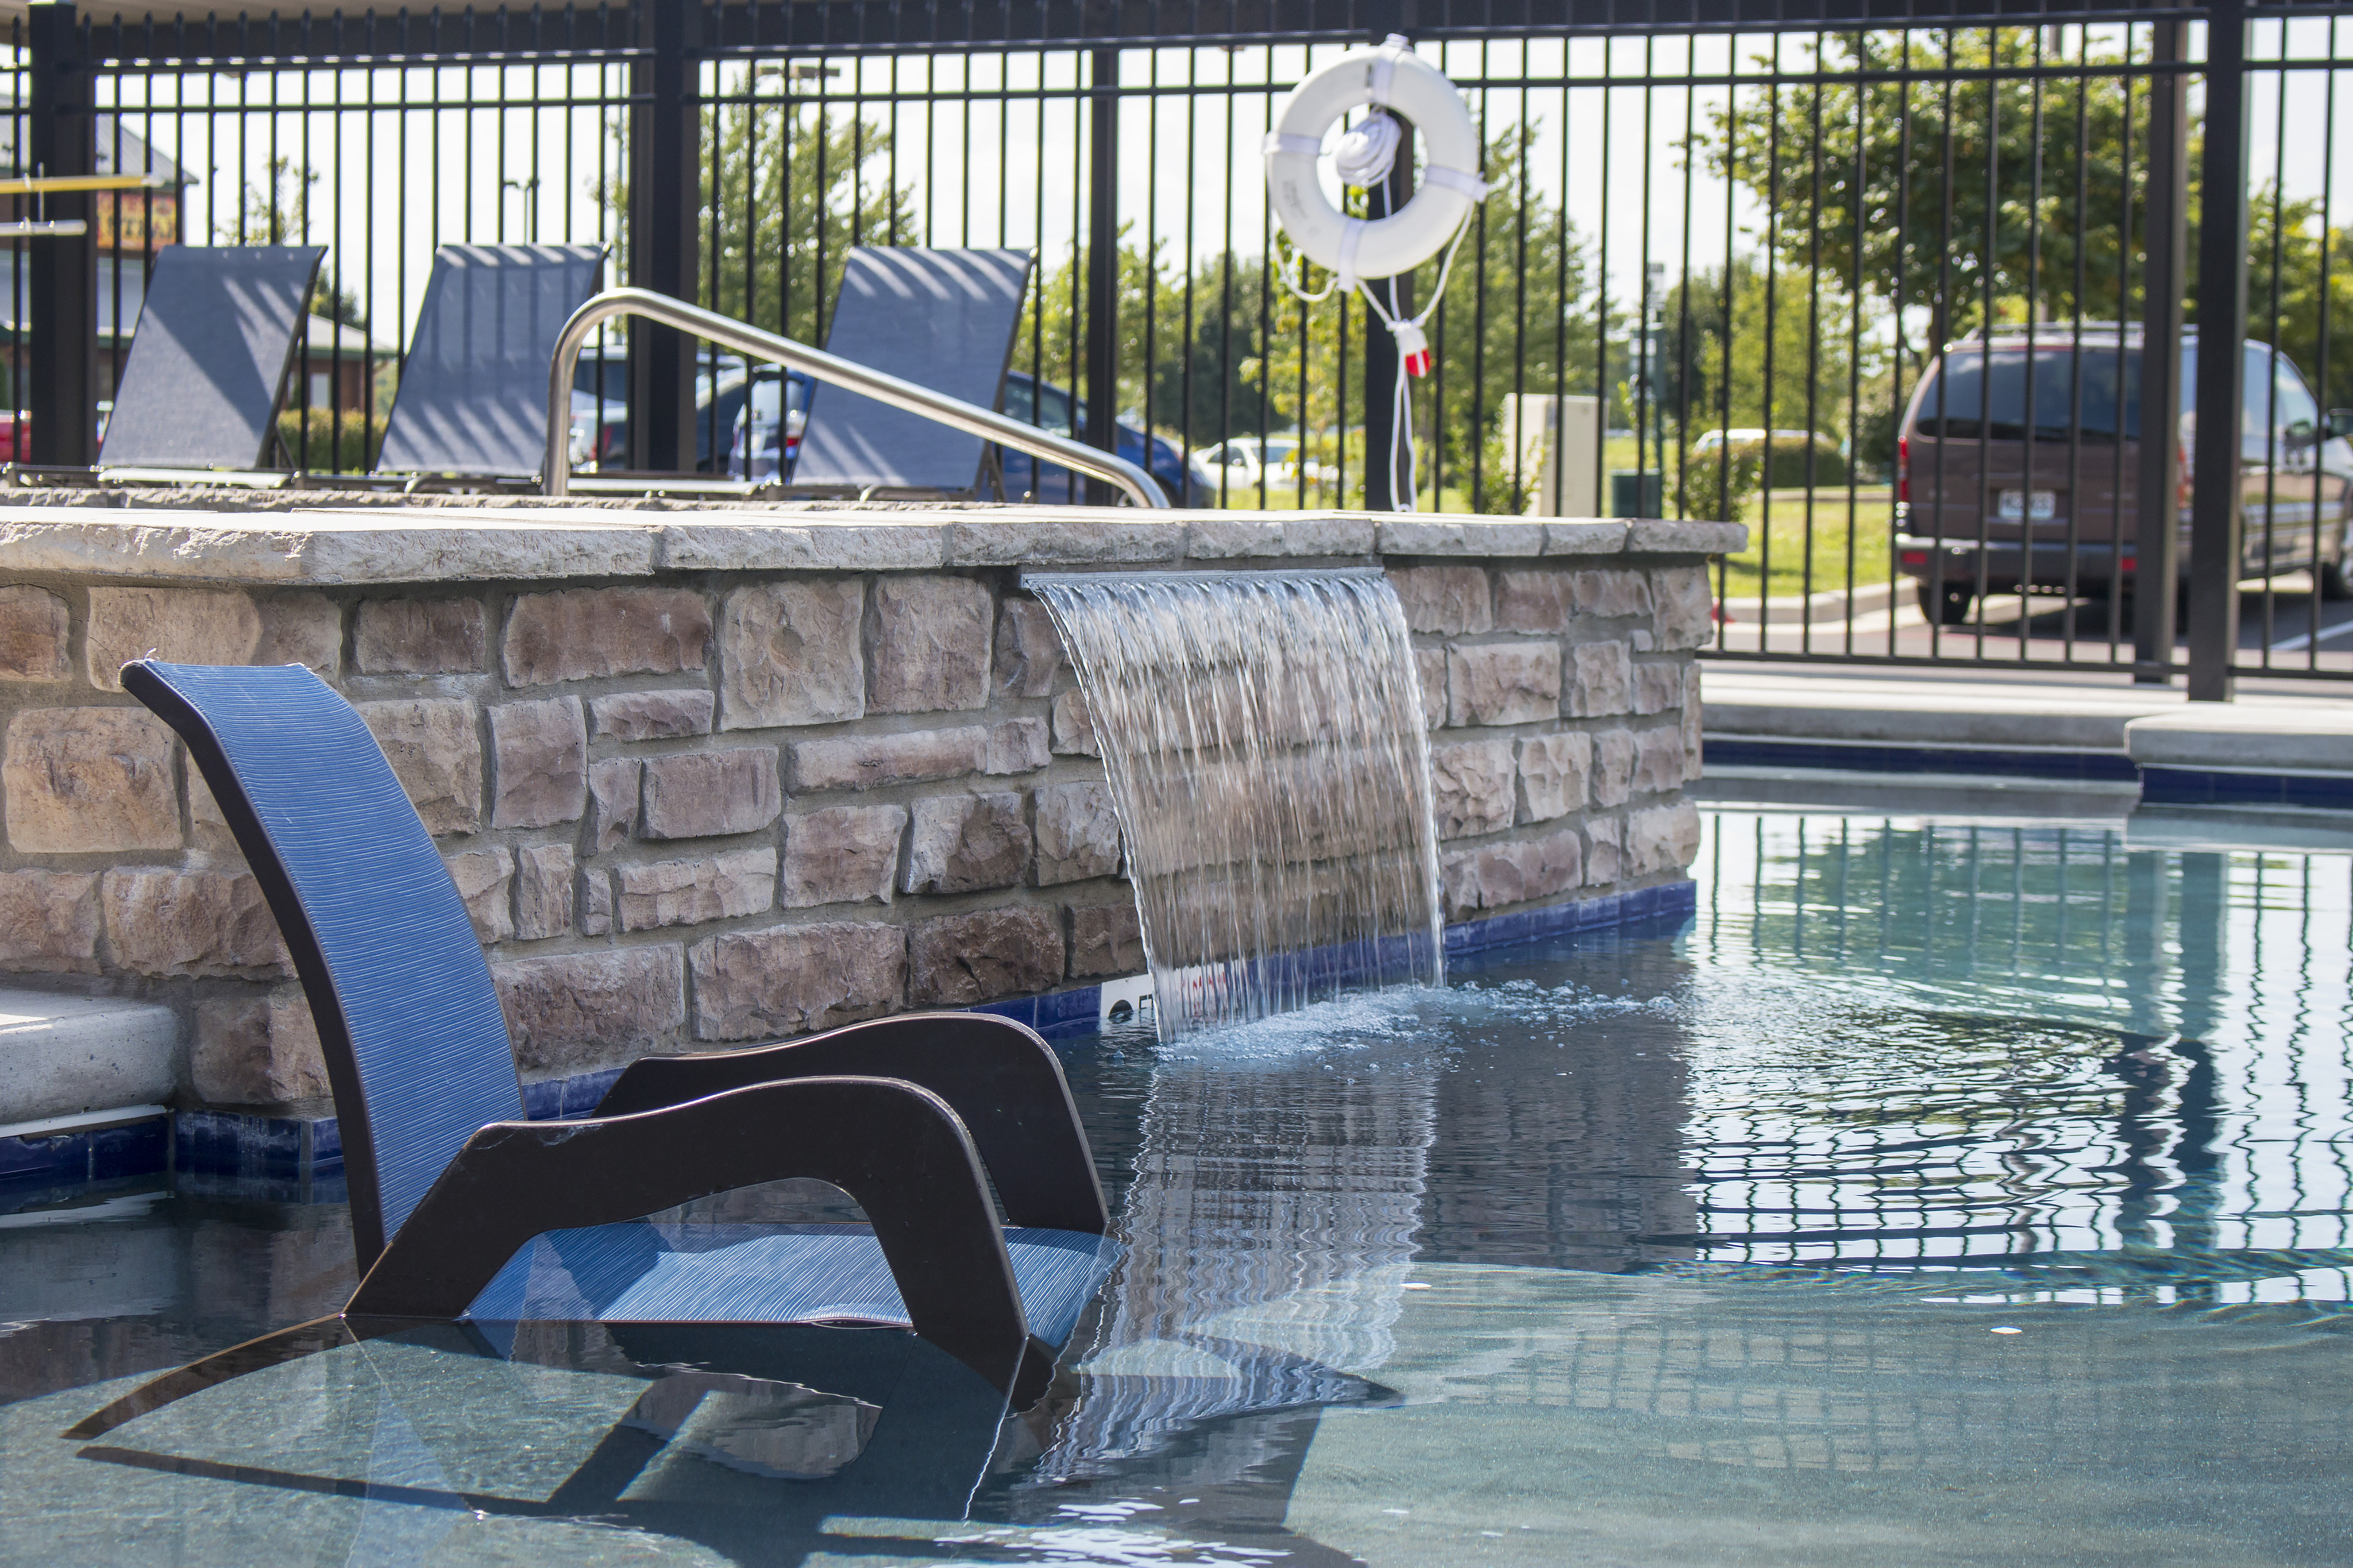 Coryell Commons 55+ hot tub with waterfall and in-water seating